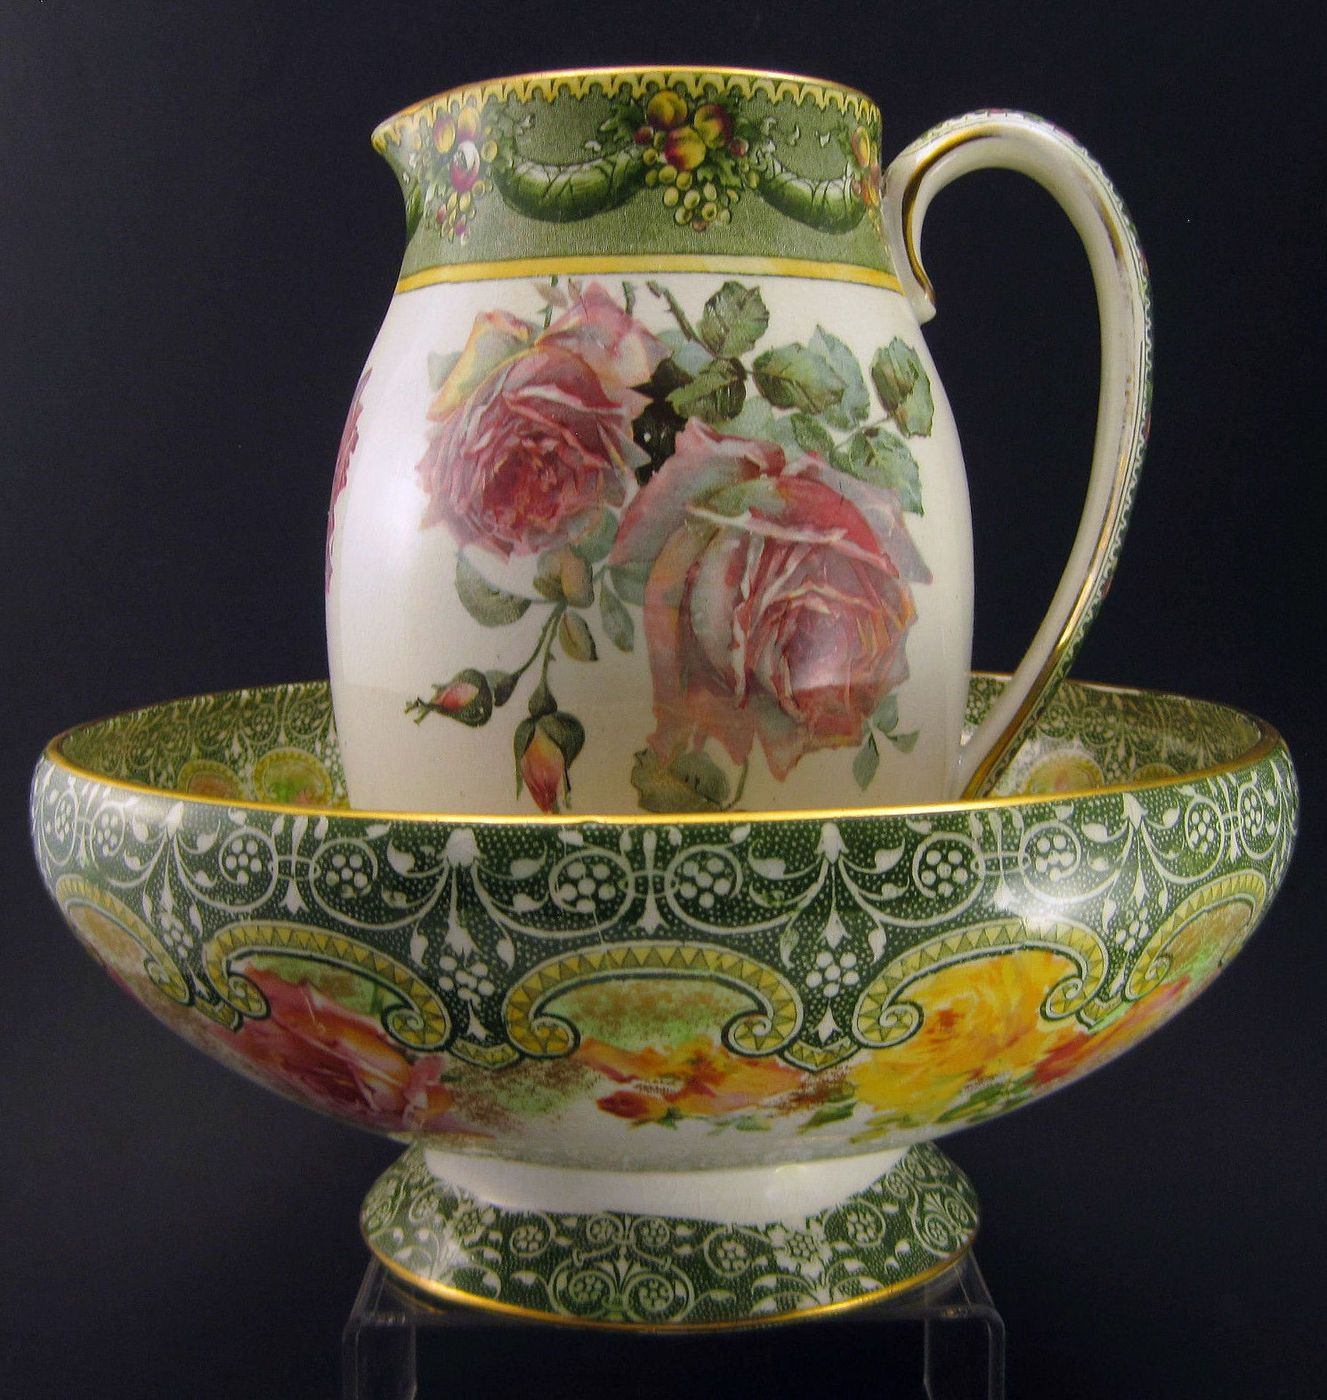 doulton burslem vase of royal doulton pitcher bowl underglazed indestructible flowers throughout for your consideration is antique royal doulton pitcher bowl in the rare underglazed indestructible flowers dacor circa both pieces have the special